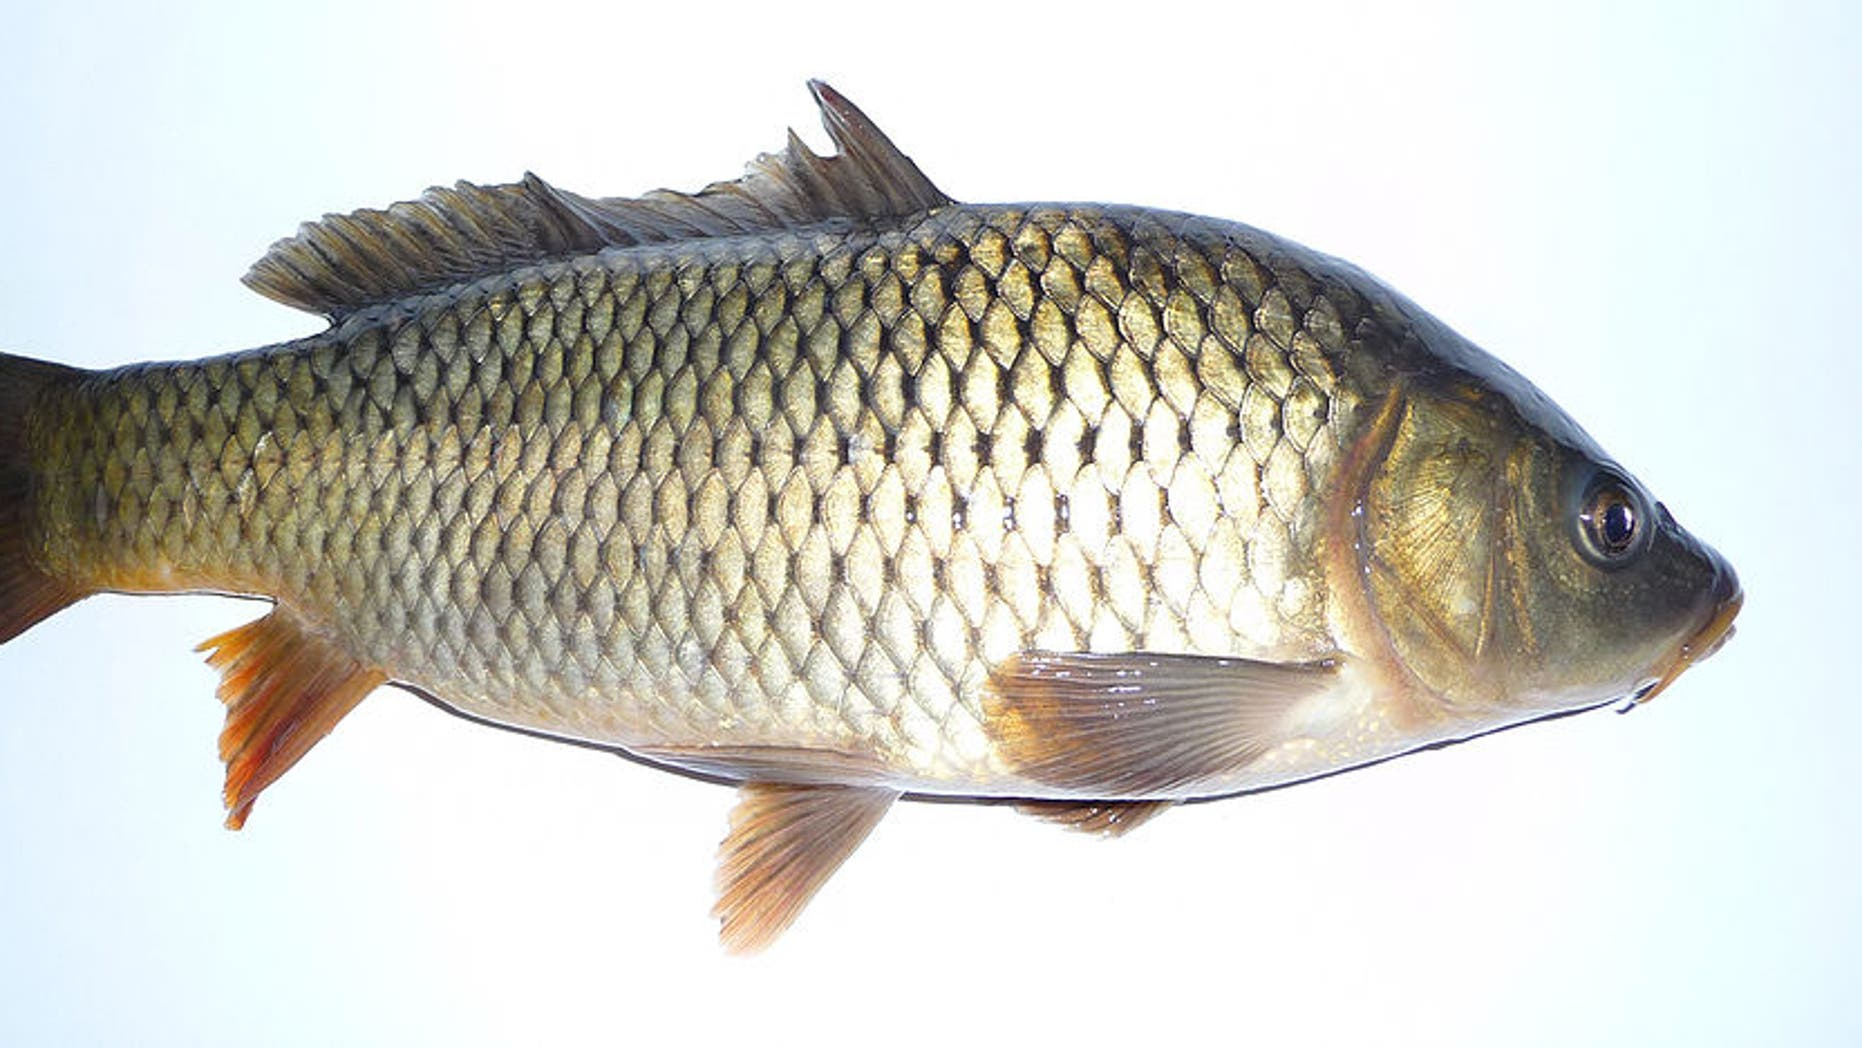 The Australian government is trying to eradicate carp in its waterways.